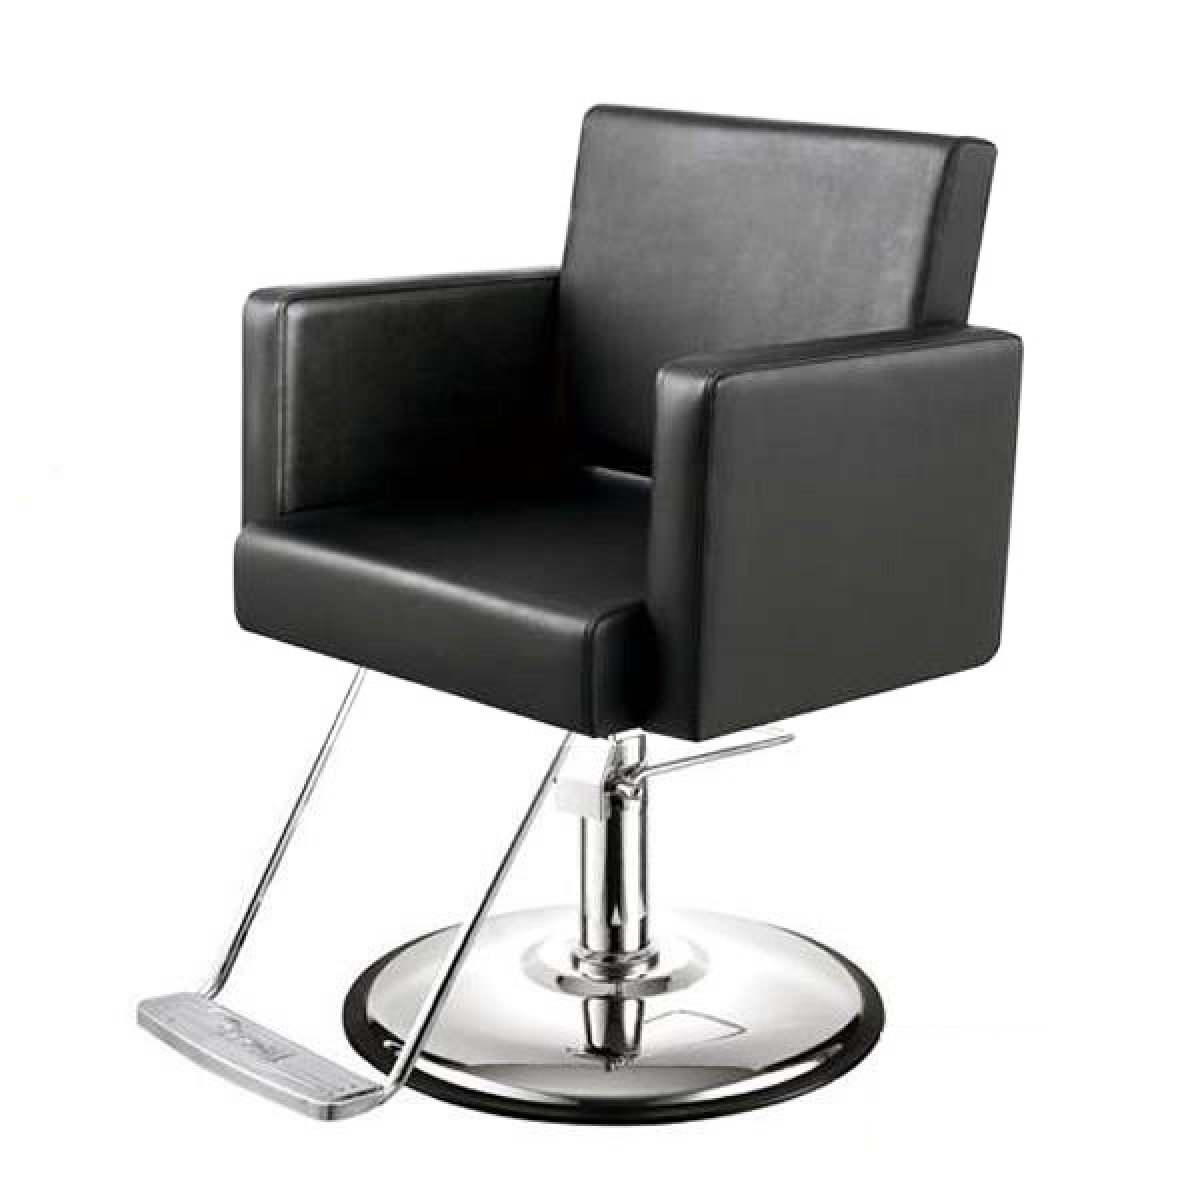 Canon Salon Styling Chair Salon Chairs Styling Chairs Salon Equipment Salon Furniture